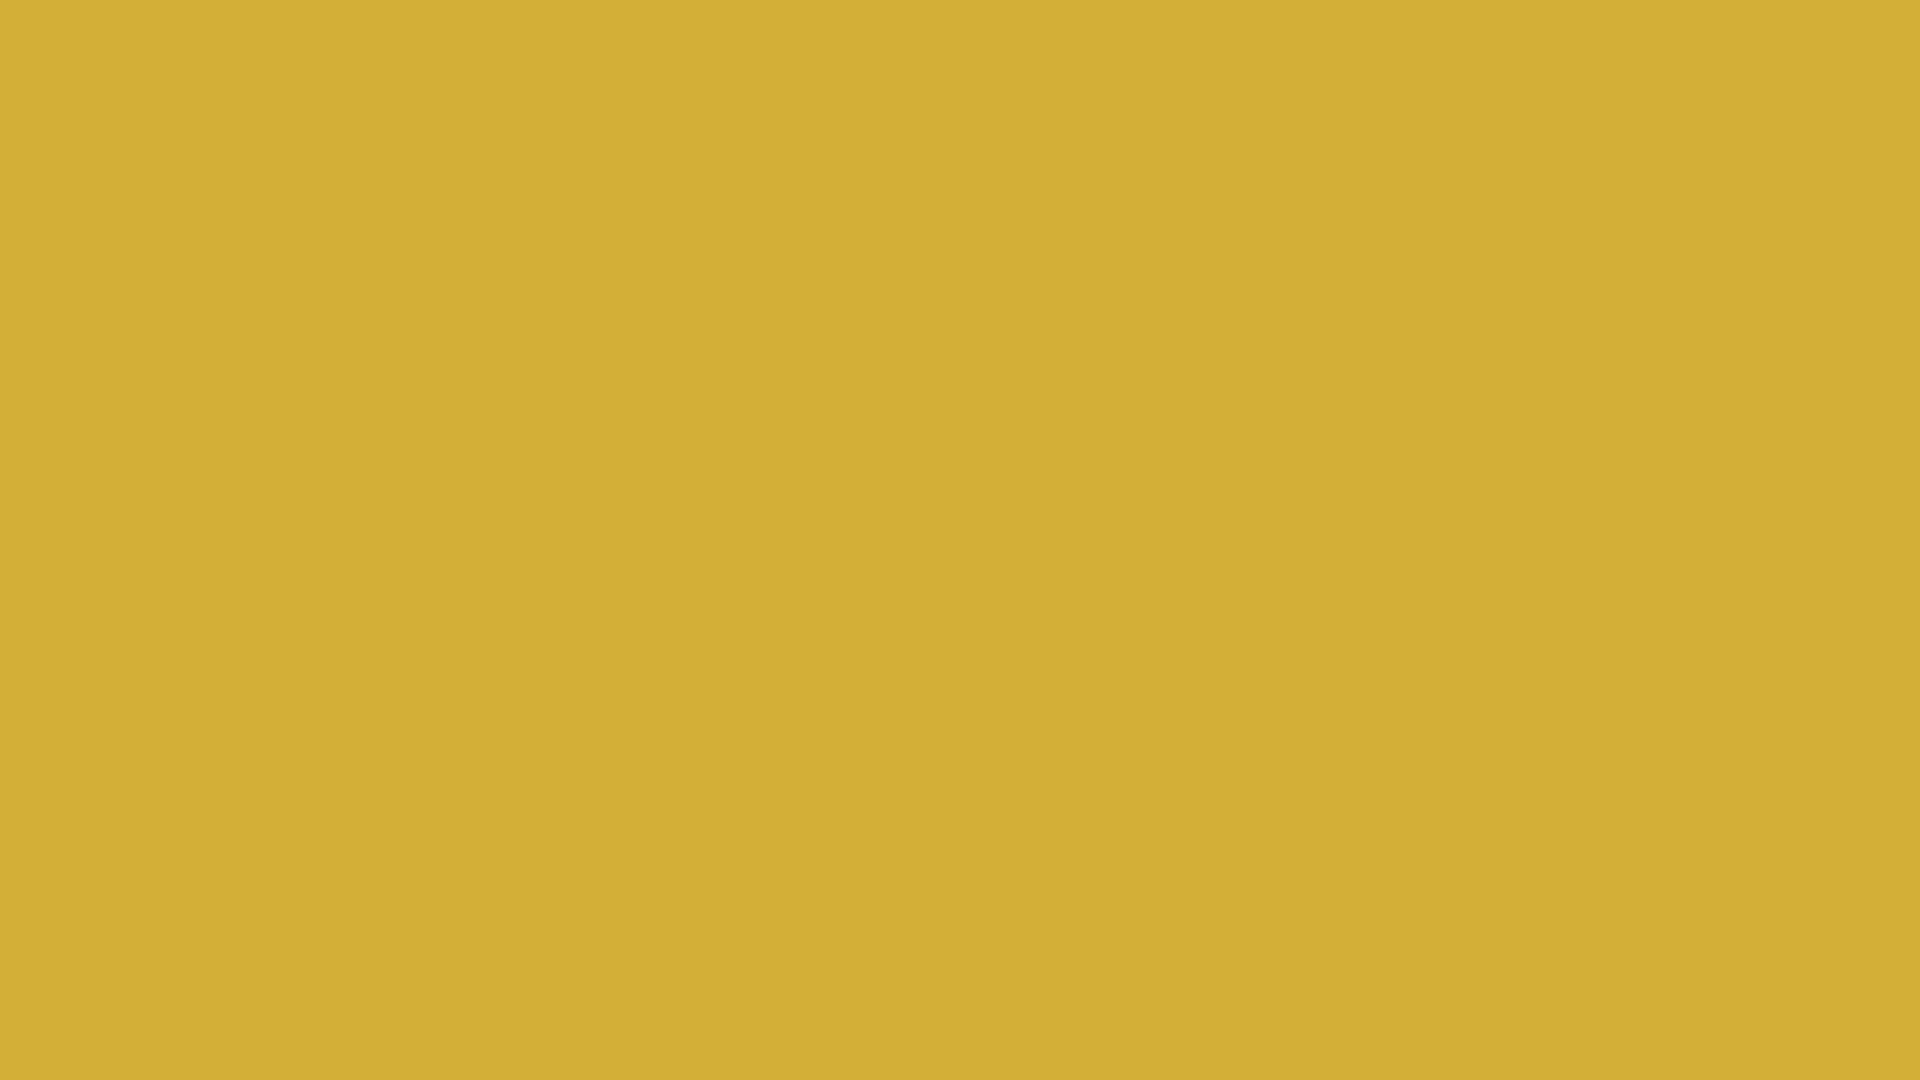 gold metallic solid color background